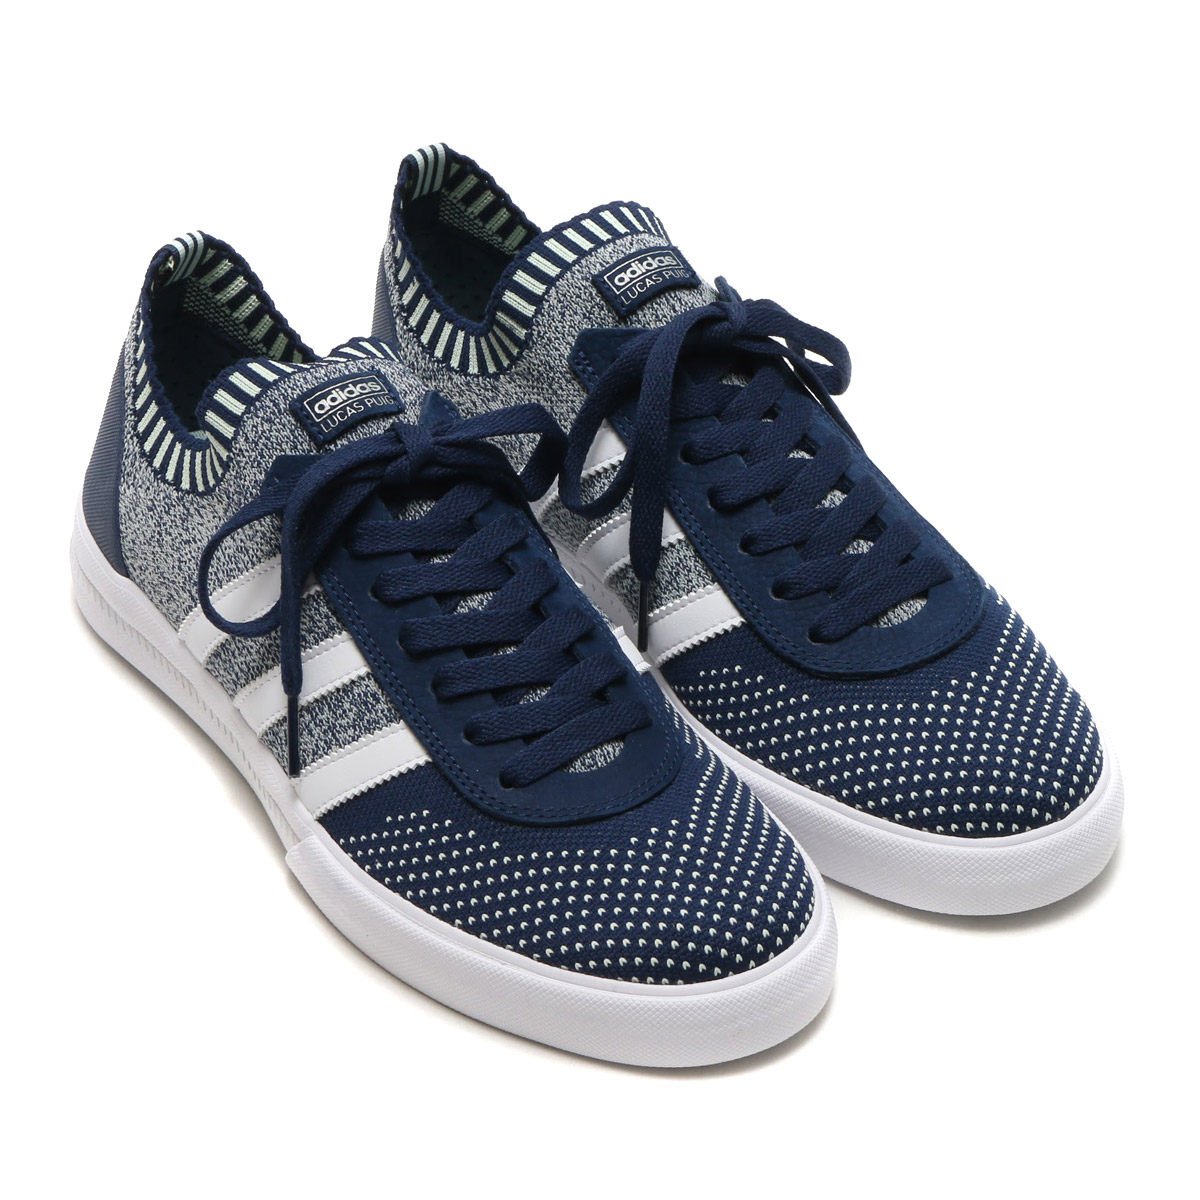 Sneakers of adidas Skateboarding (Adidas skateboarding). The moment when